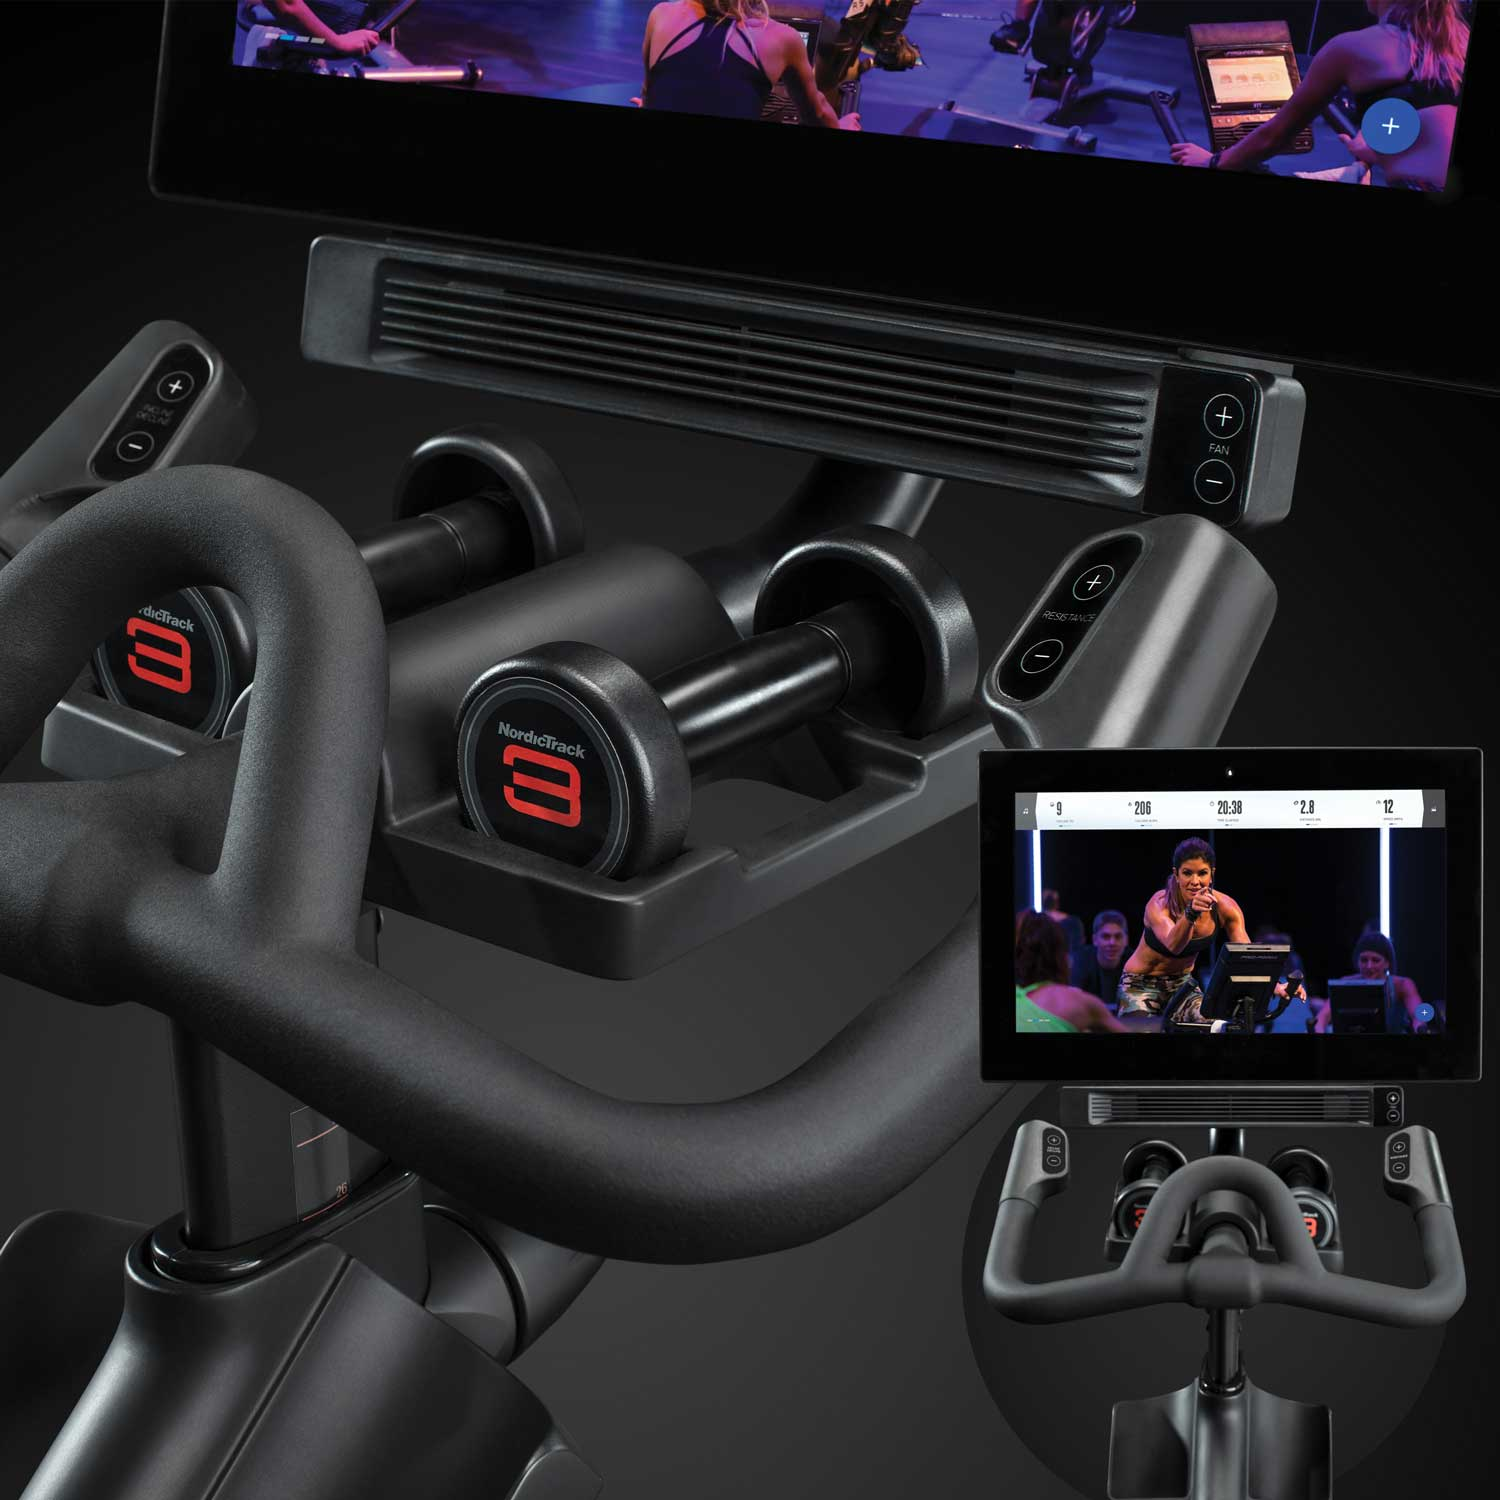 Easy access to 1 touch button controls on handlebars for precise adjustments